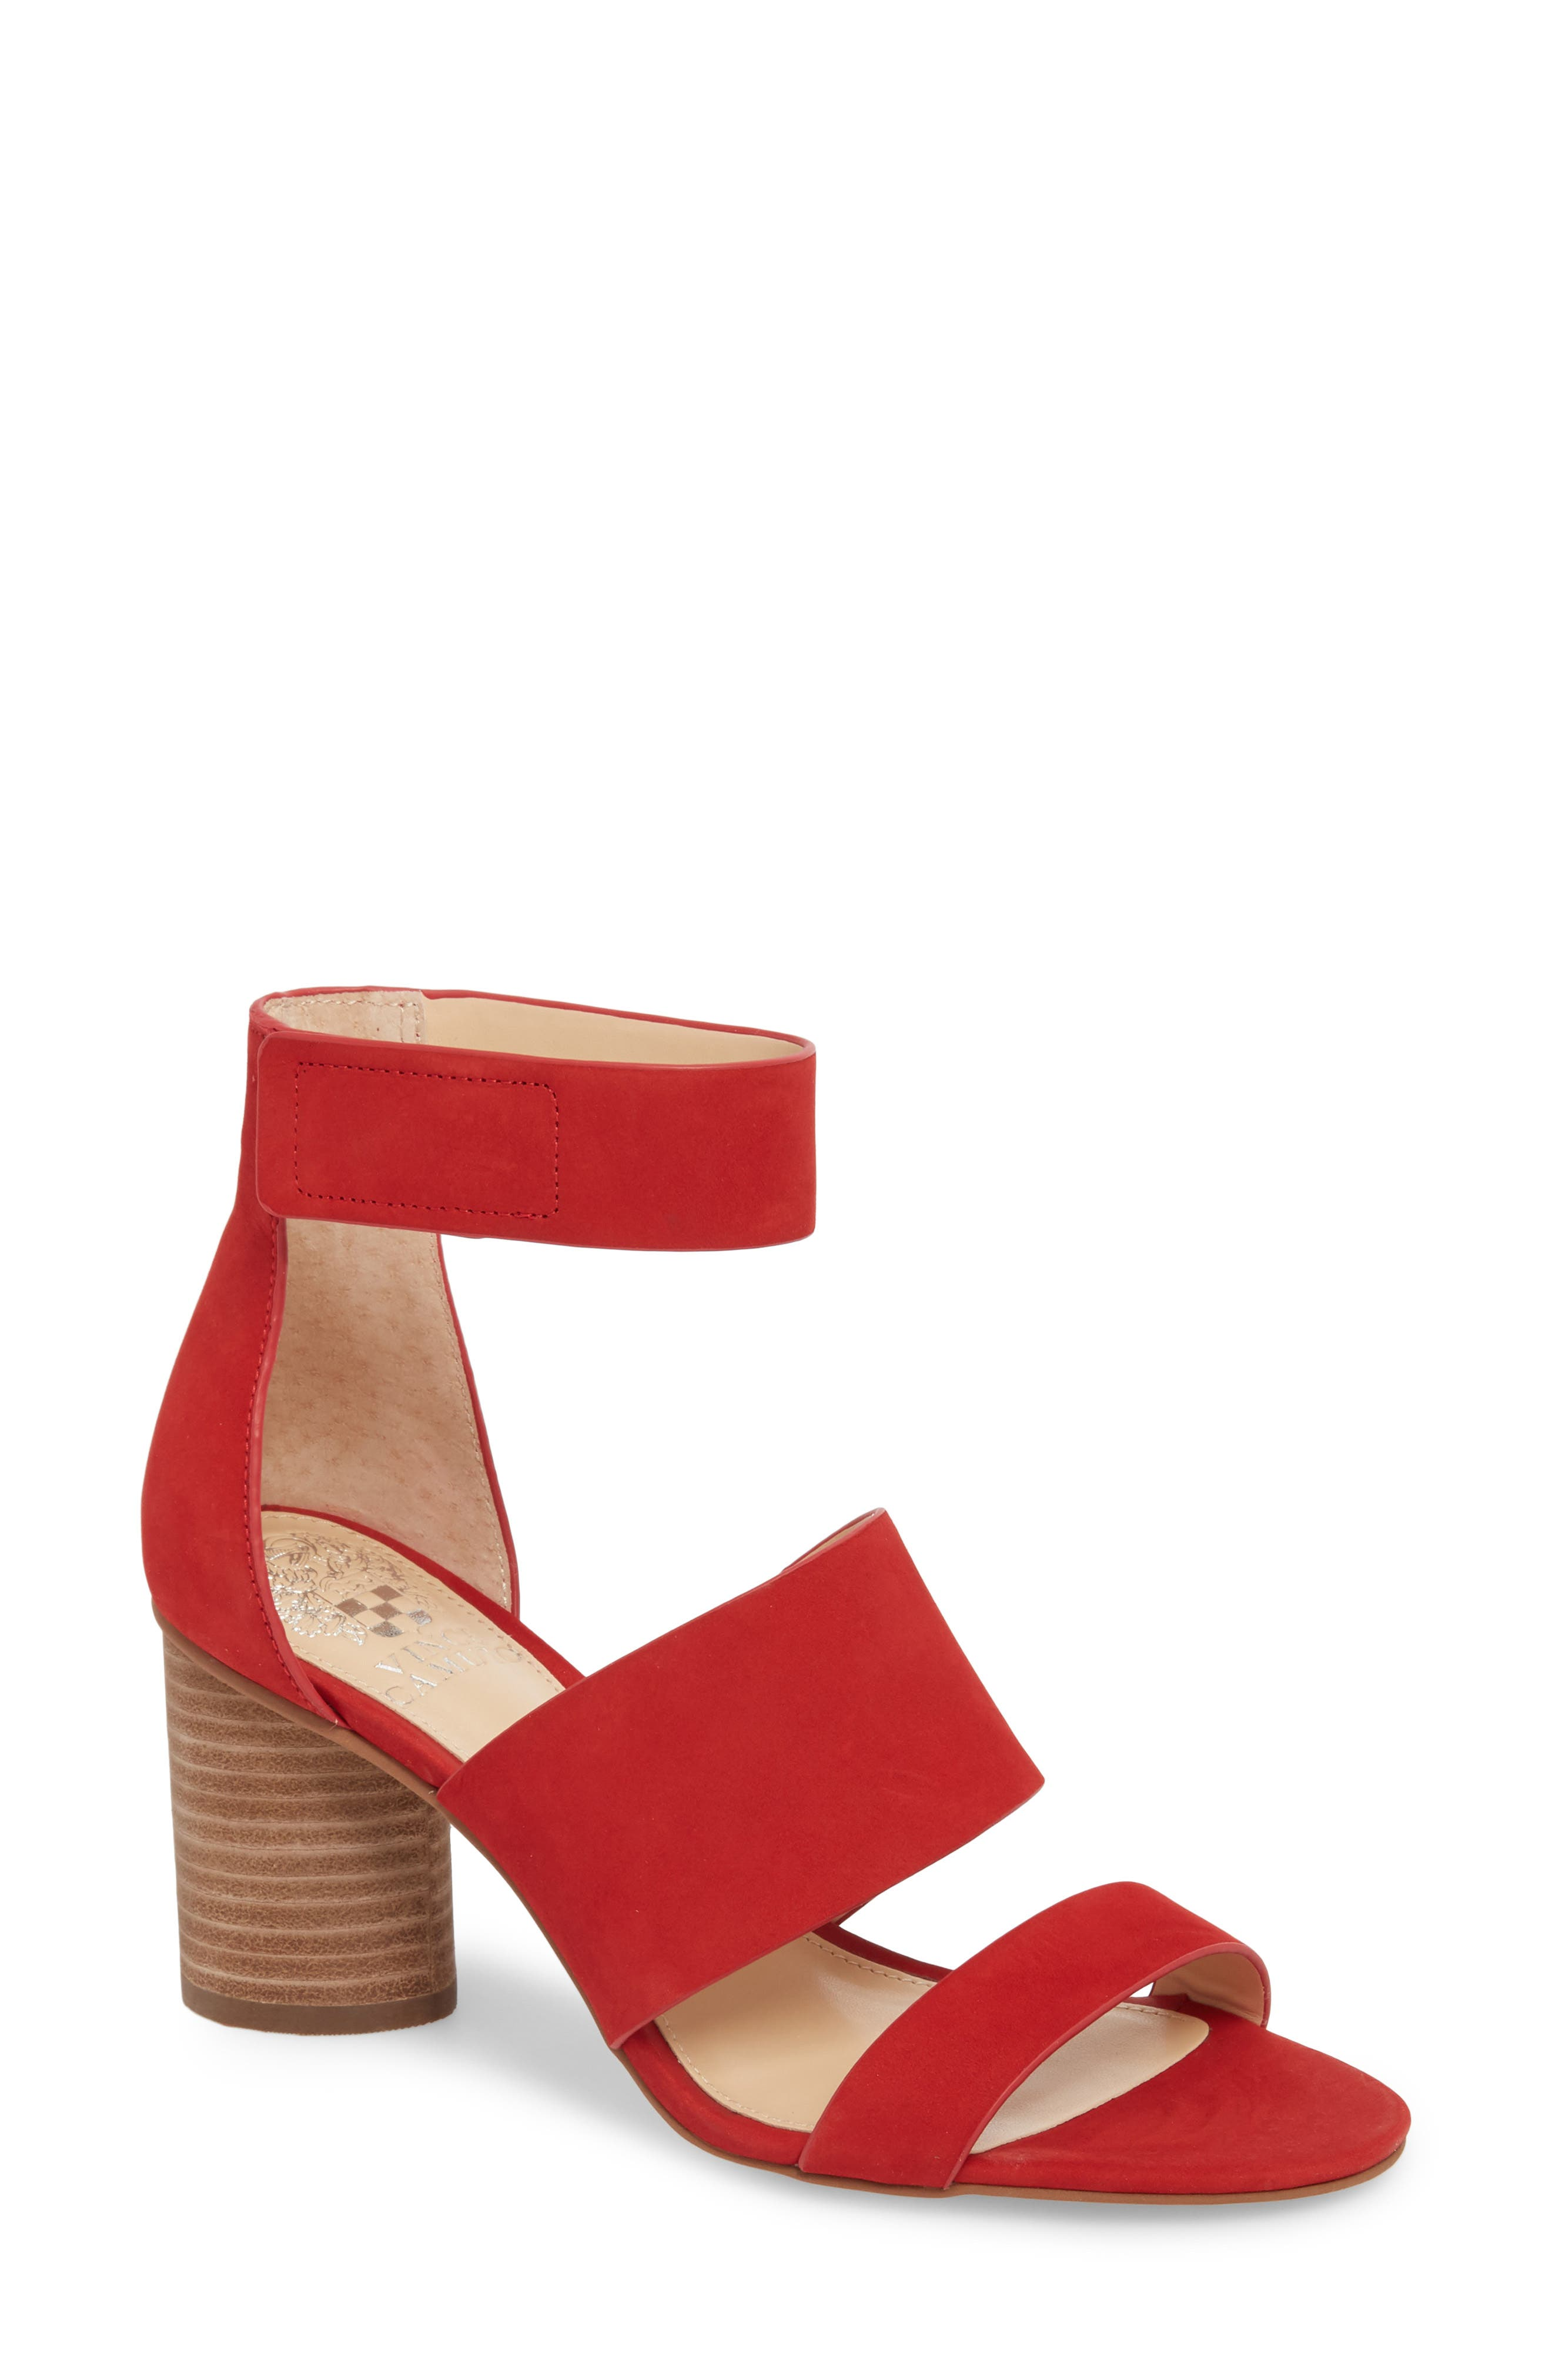 Junette Sandal,                         Main,                         color, Cherry Red Leather